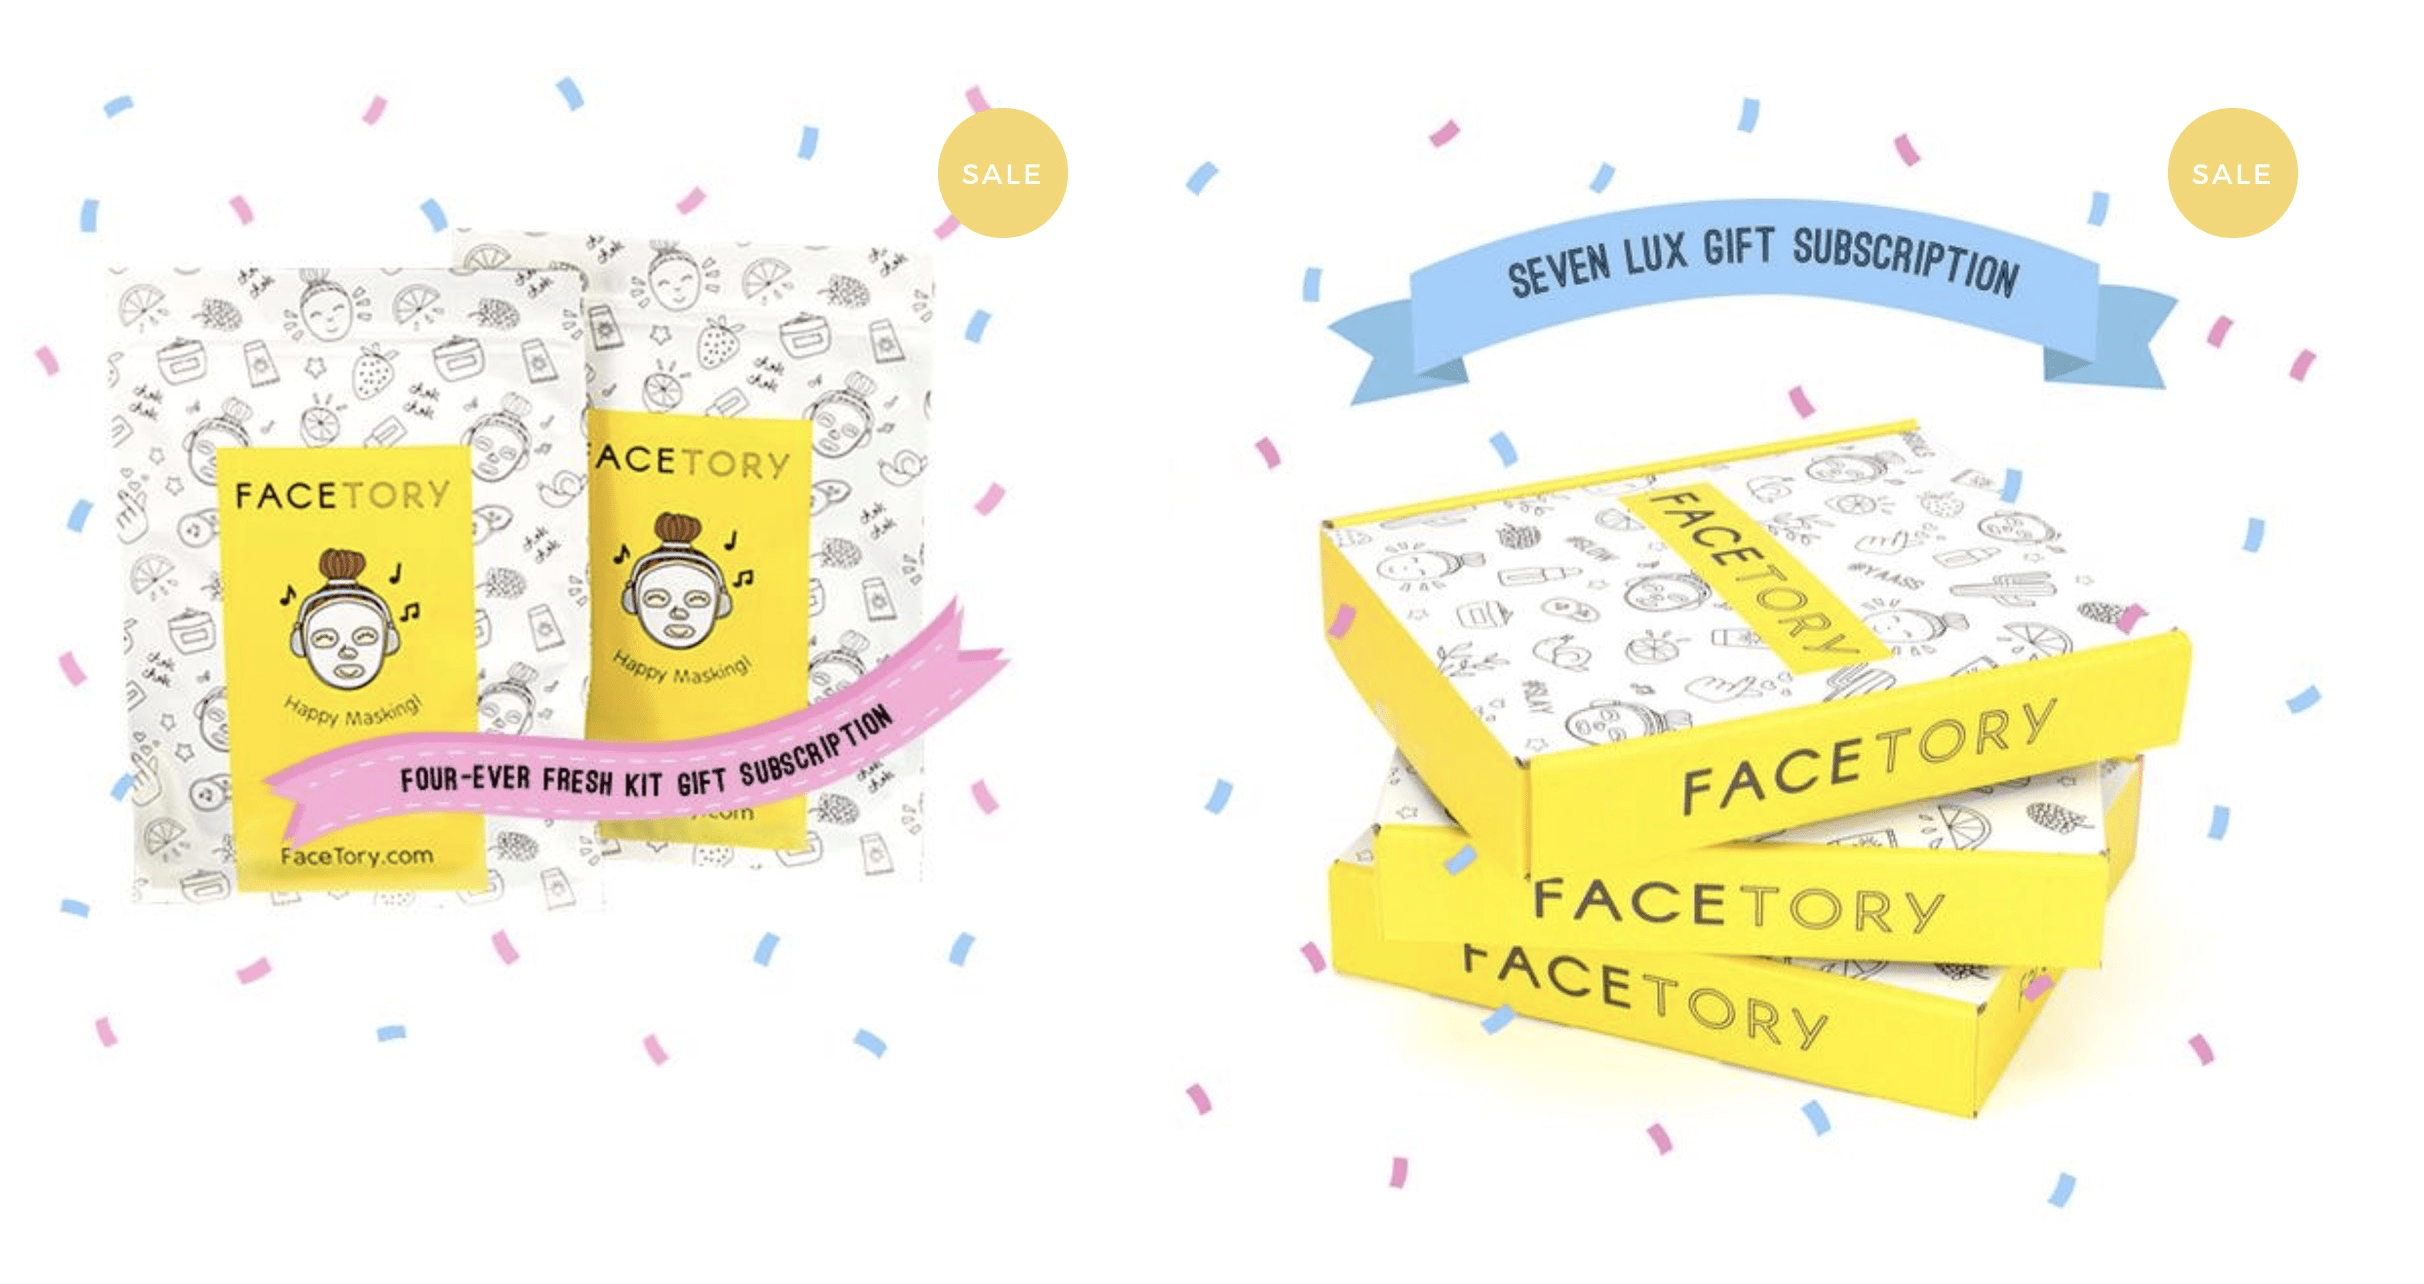 Facetory Gift Subscription Coupon: Save up to $35 on Gifted Subscriptions!